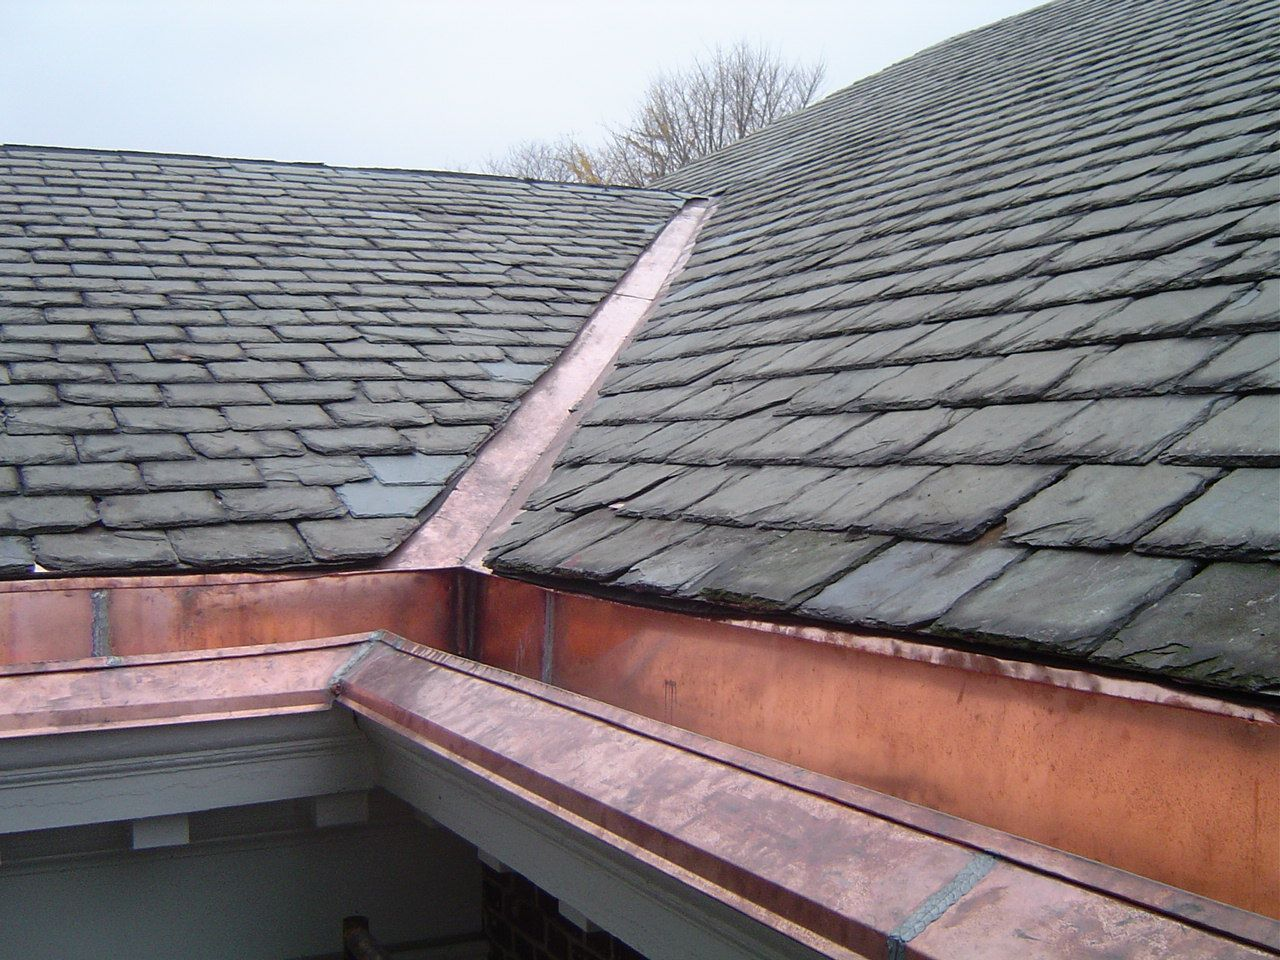 Inline Copper Gutter With Buckingham Slate In Hilton Village Newport News Virginia Roof Repair Roofing Residential Roofing